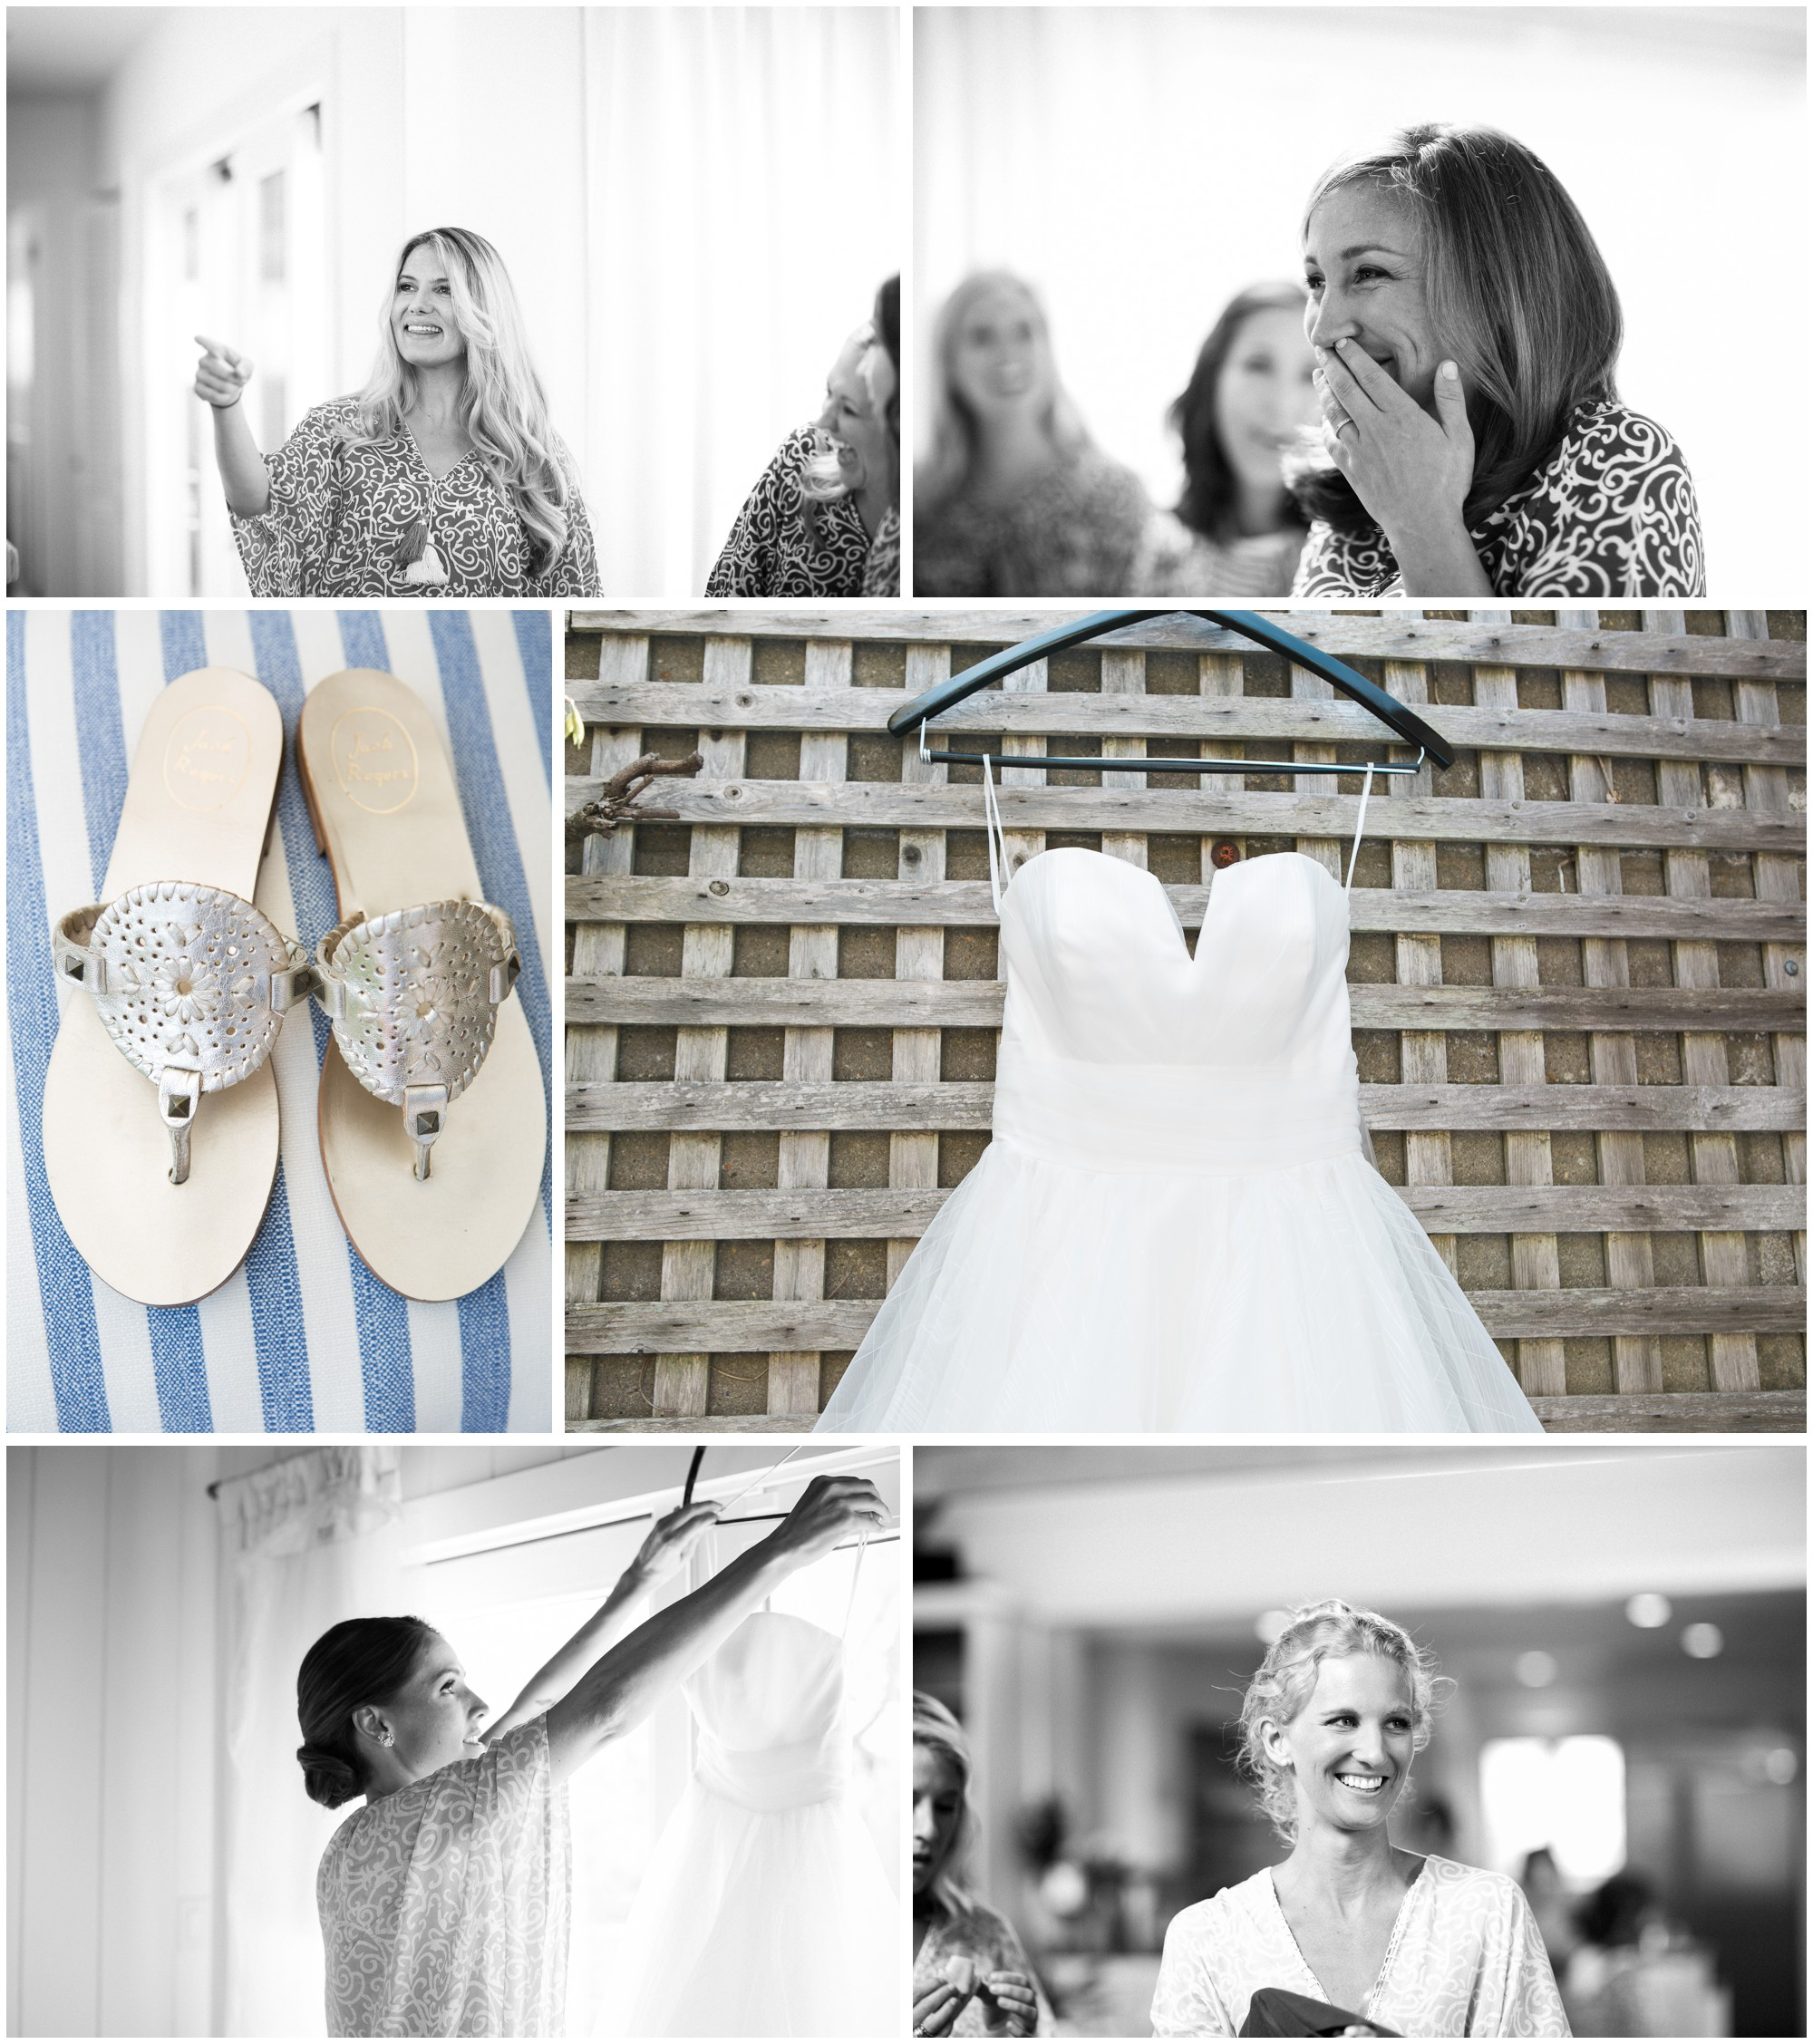 a collage of images showing a bride getting ready at a house in amagansett for her wedding at gansett green manor